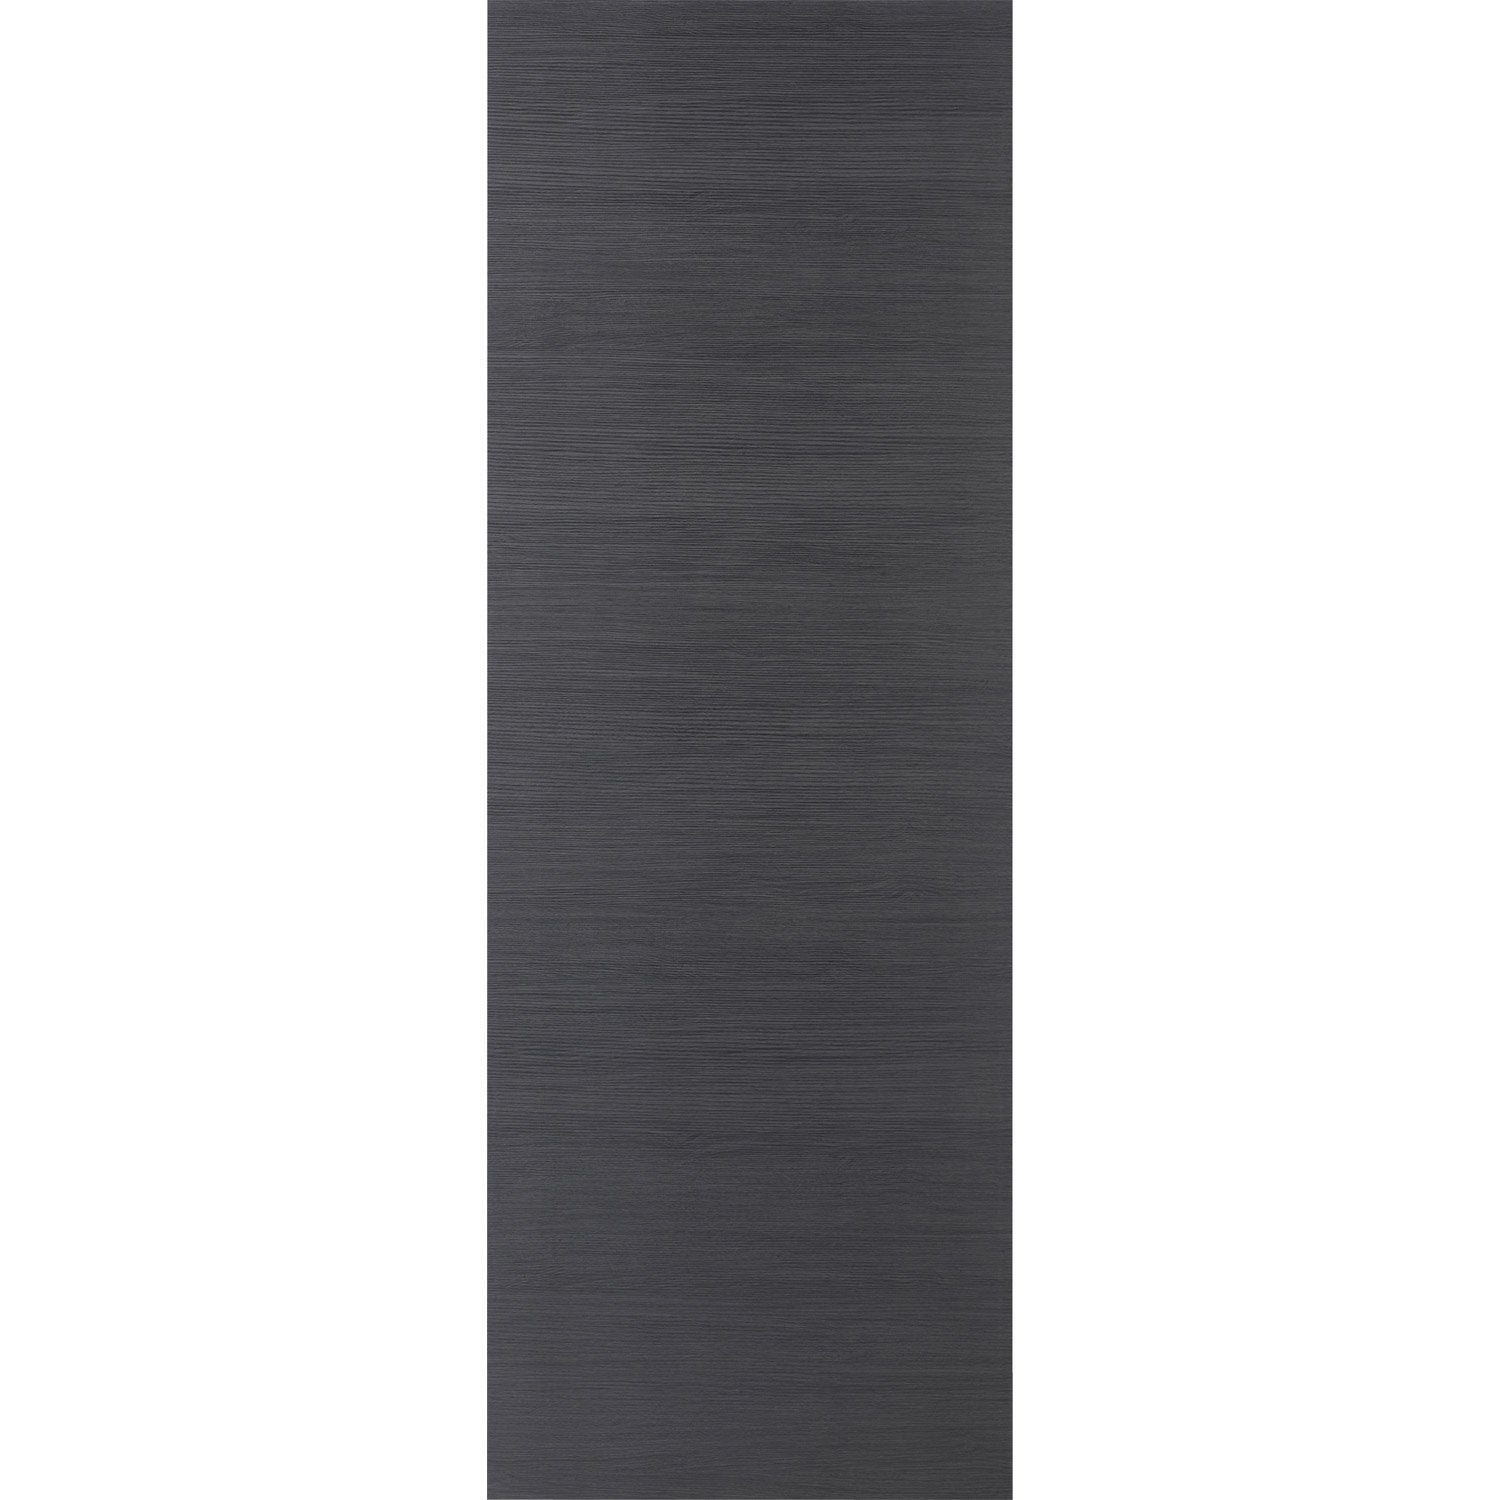 Porte coulissante rev tu d cor ch ne gris londres 204 x for Porte coulissante salon 140 cm